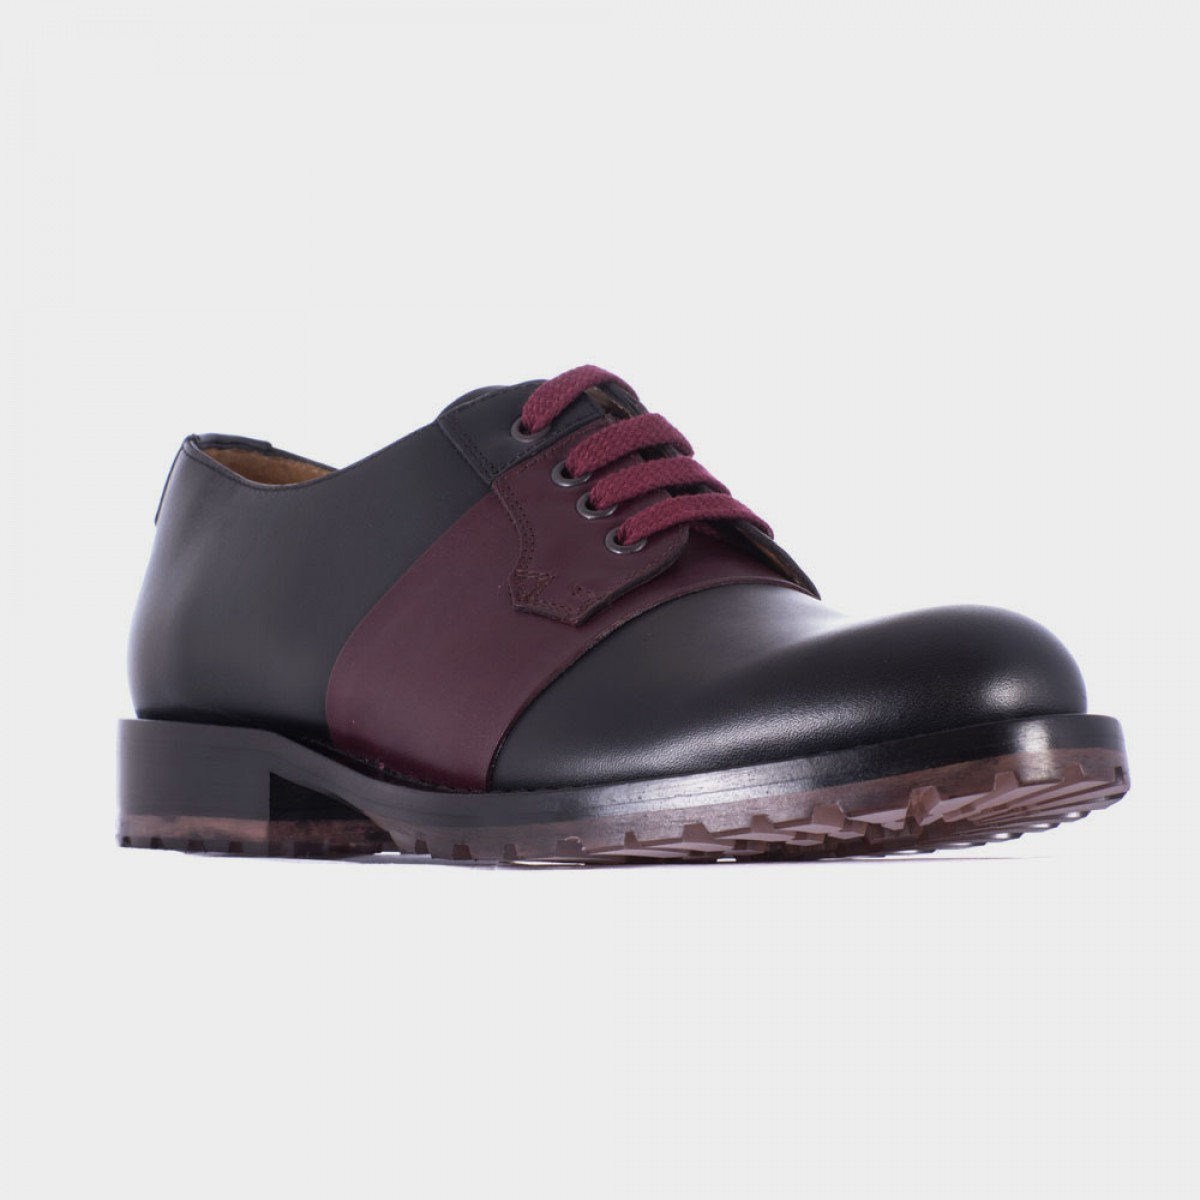 valentino black leather derby shoes with bordeaux band in